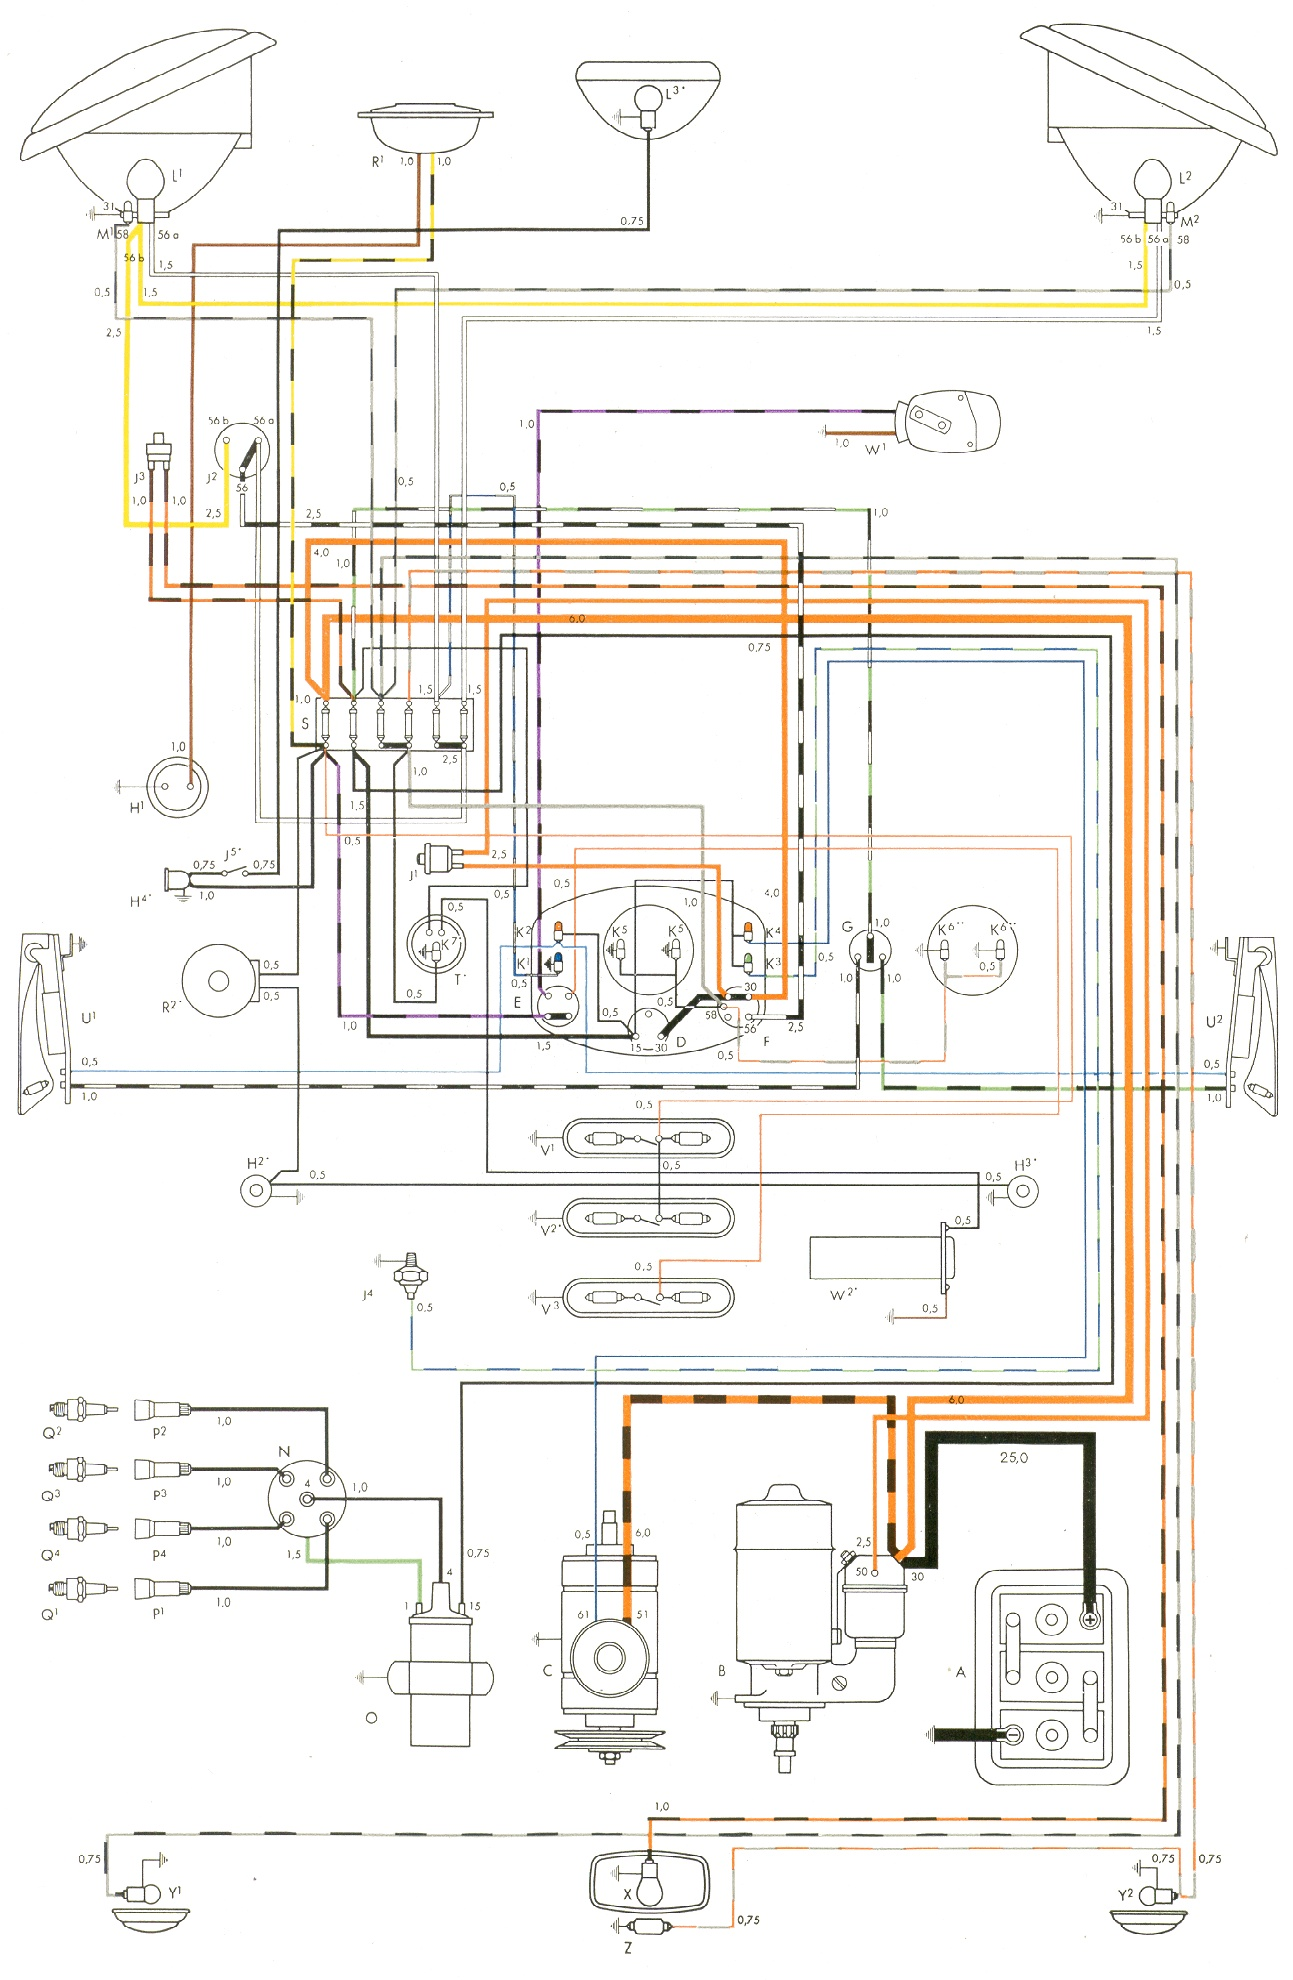 bus 54 vw wiring diagrams 73 vw beetle wiring diagram at nearapp.co